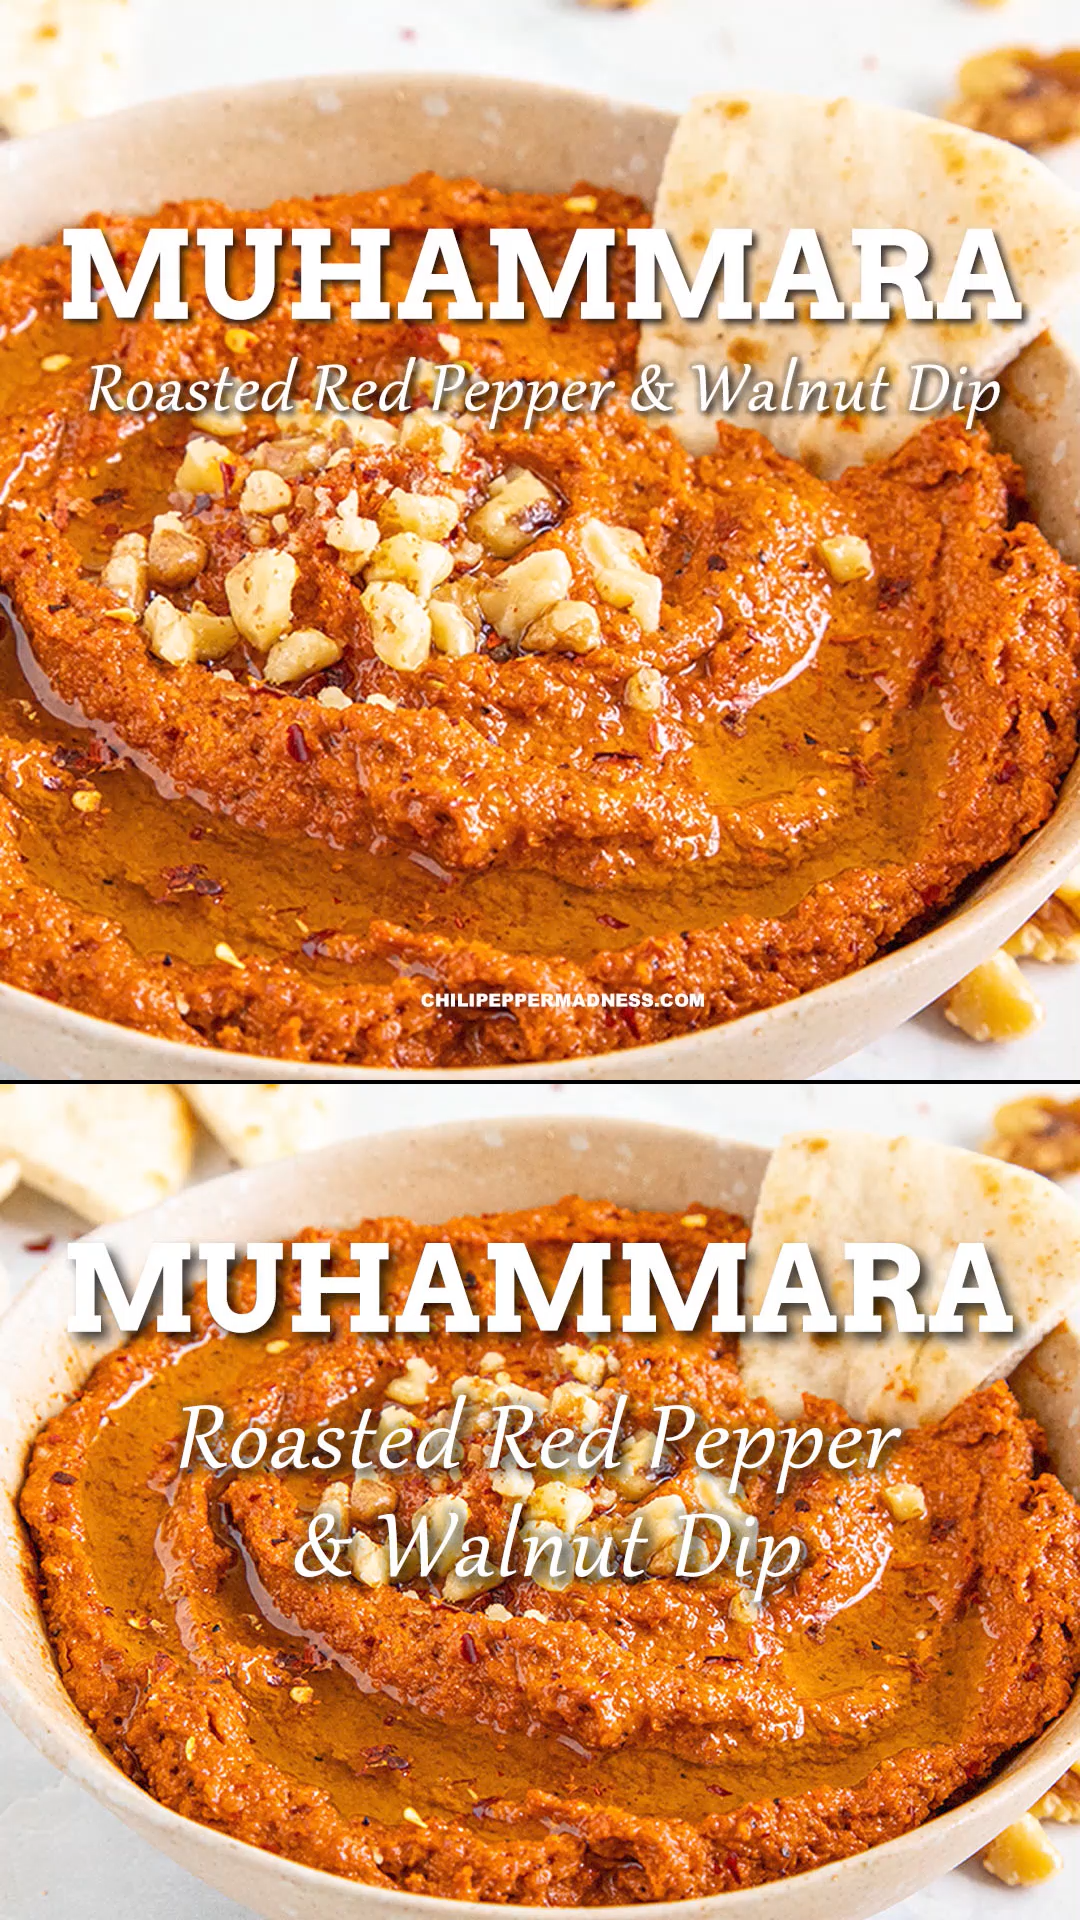 This easy savory dip recipe has oven-roasted red peppers and delicious flavor from pomengranate juice and nutty walnuts. Muhammara is an easy, authentic appetizer from the Middle East. #dips #partyfood #easyrecipe #appetizers